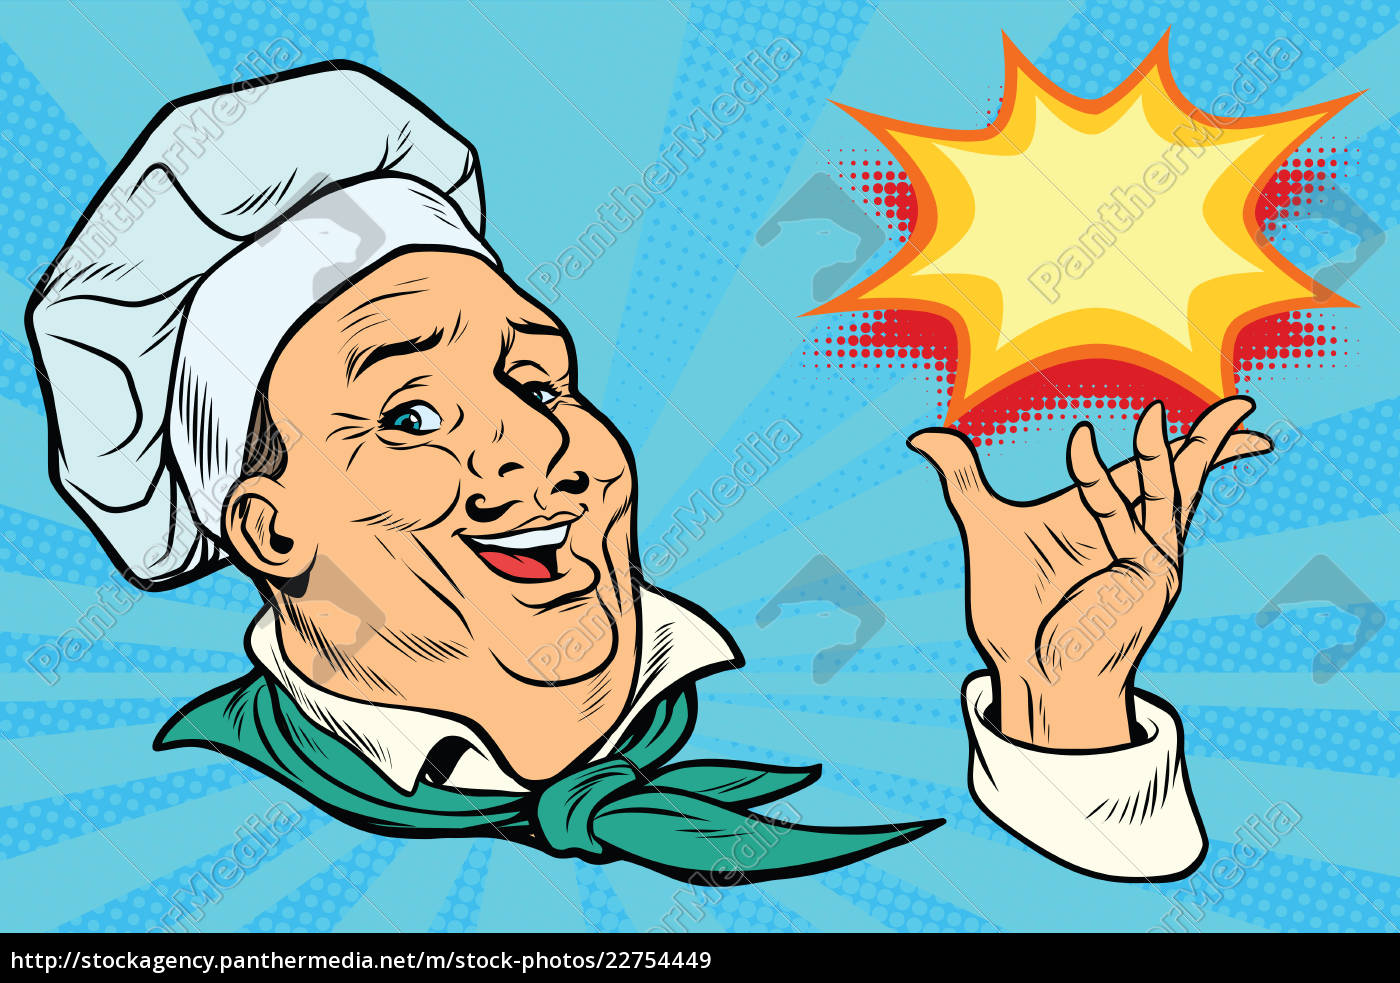 chef, holding, hand, gesture - 22754449